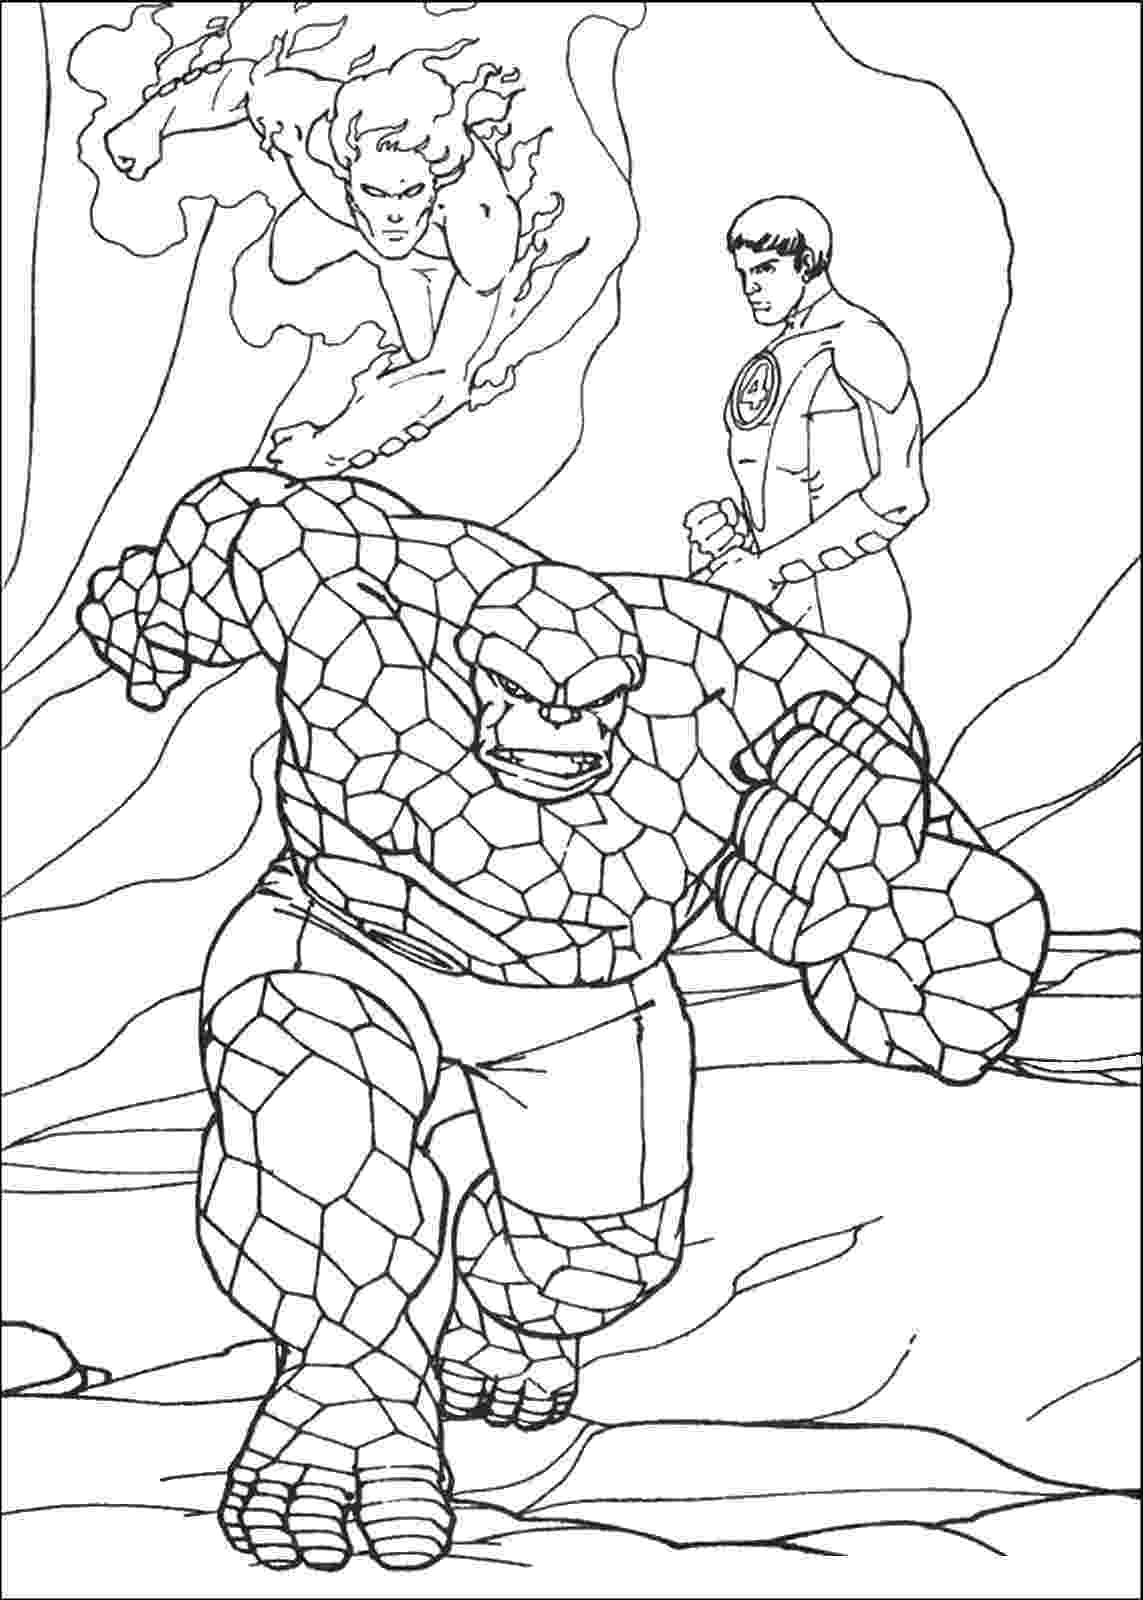 fantastic 4 coloring pictures the fantastic four coloring pages fantastic 4 coloring pictures